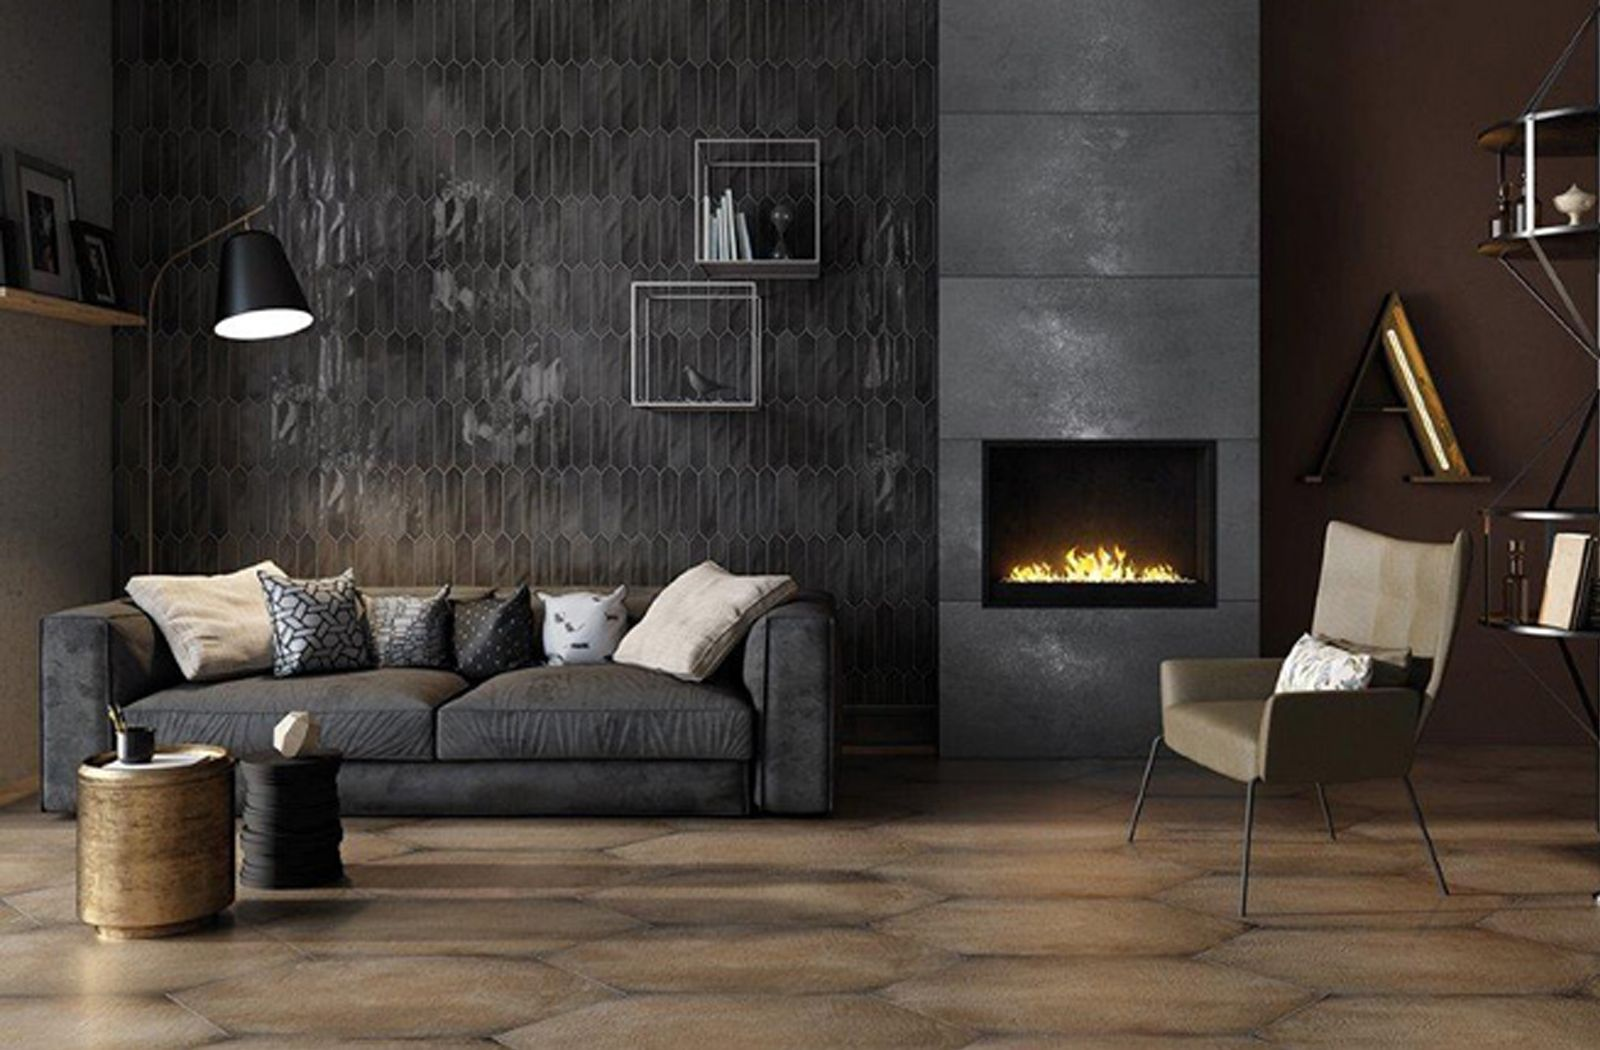 Dark Luxurious Living Area With Feature Wall Featuring Crayons